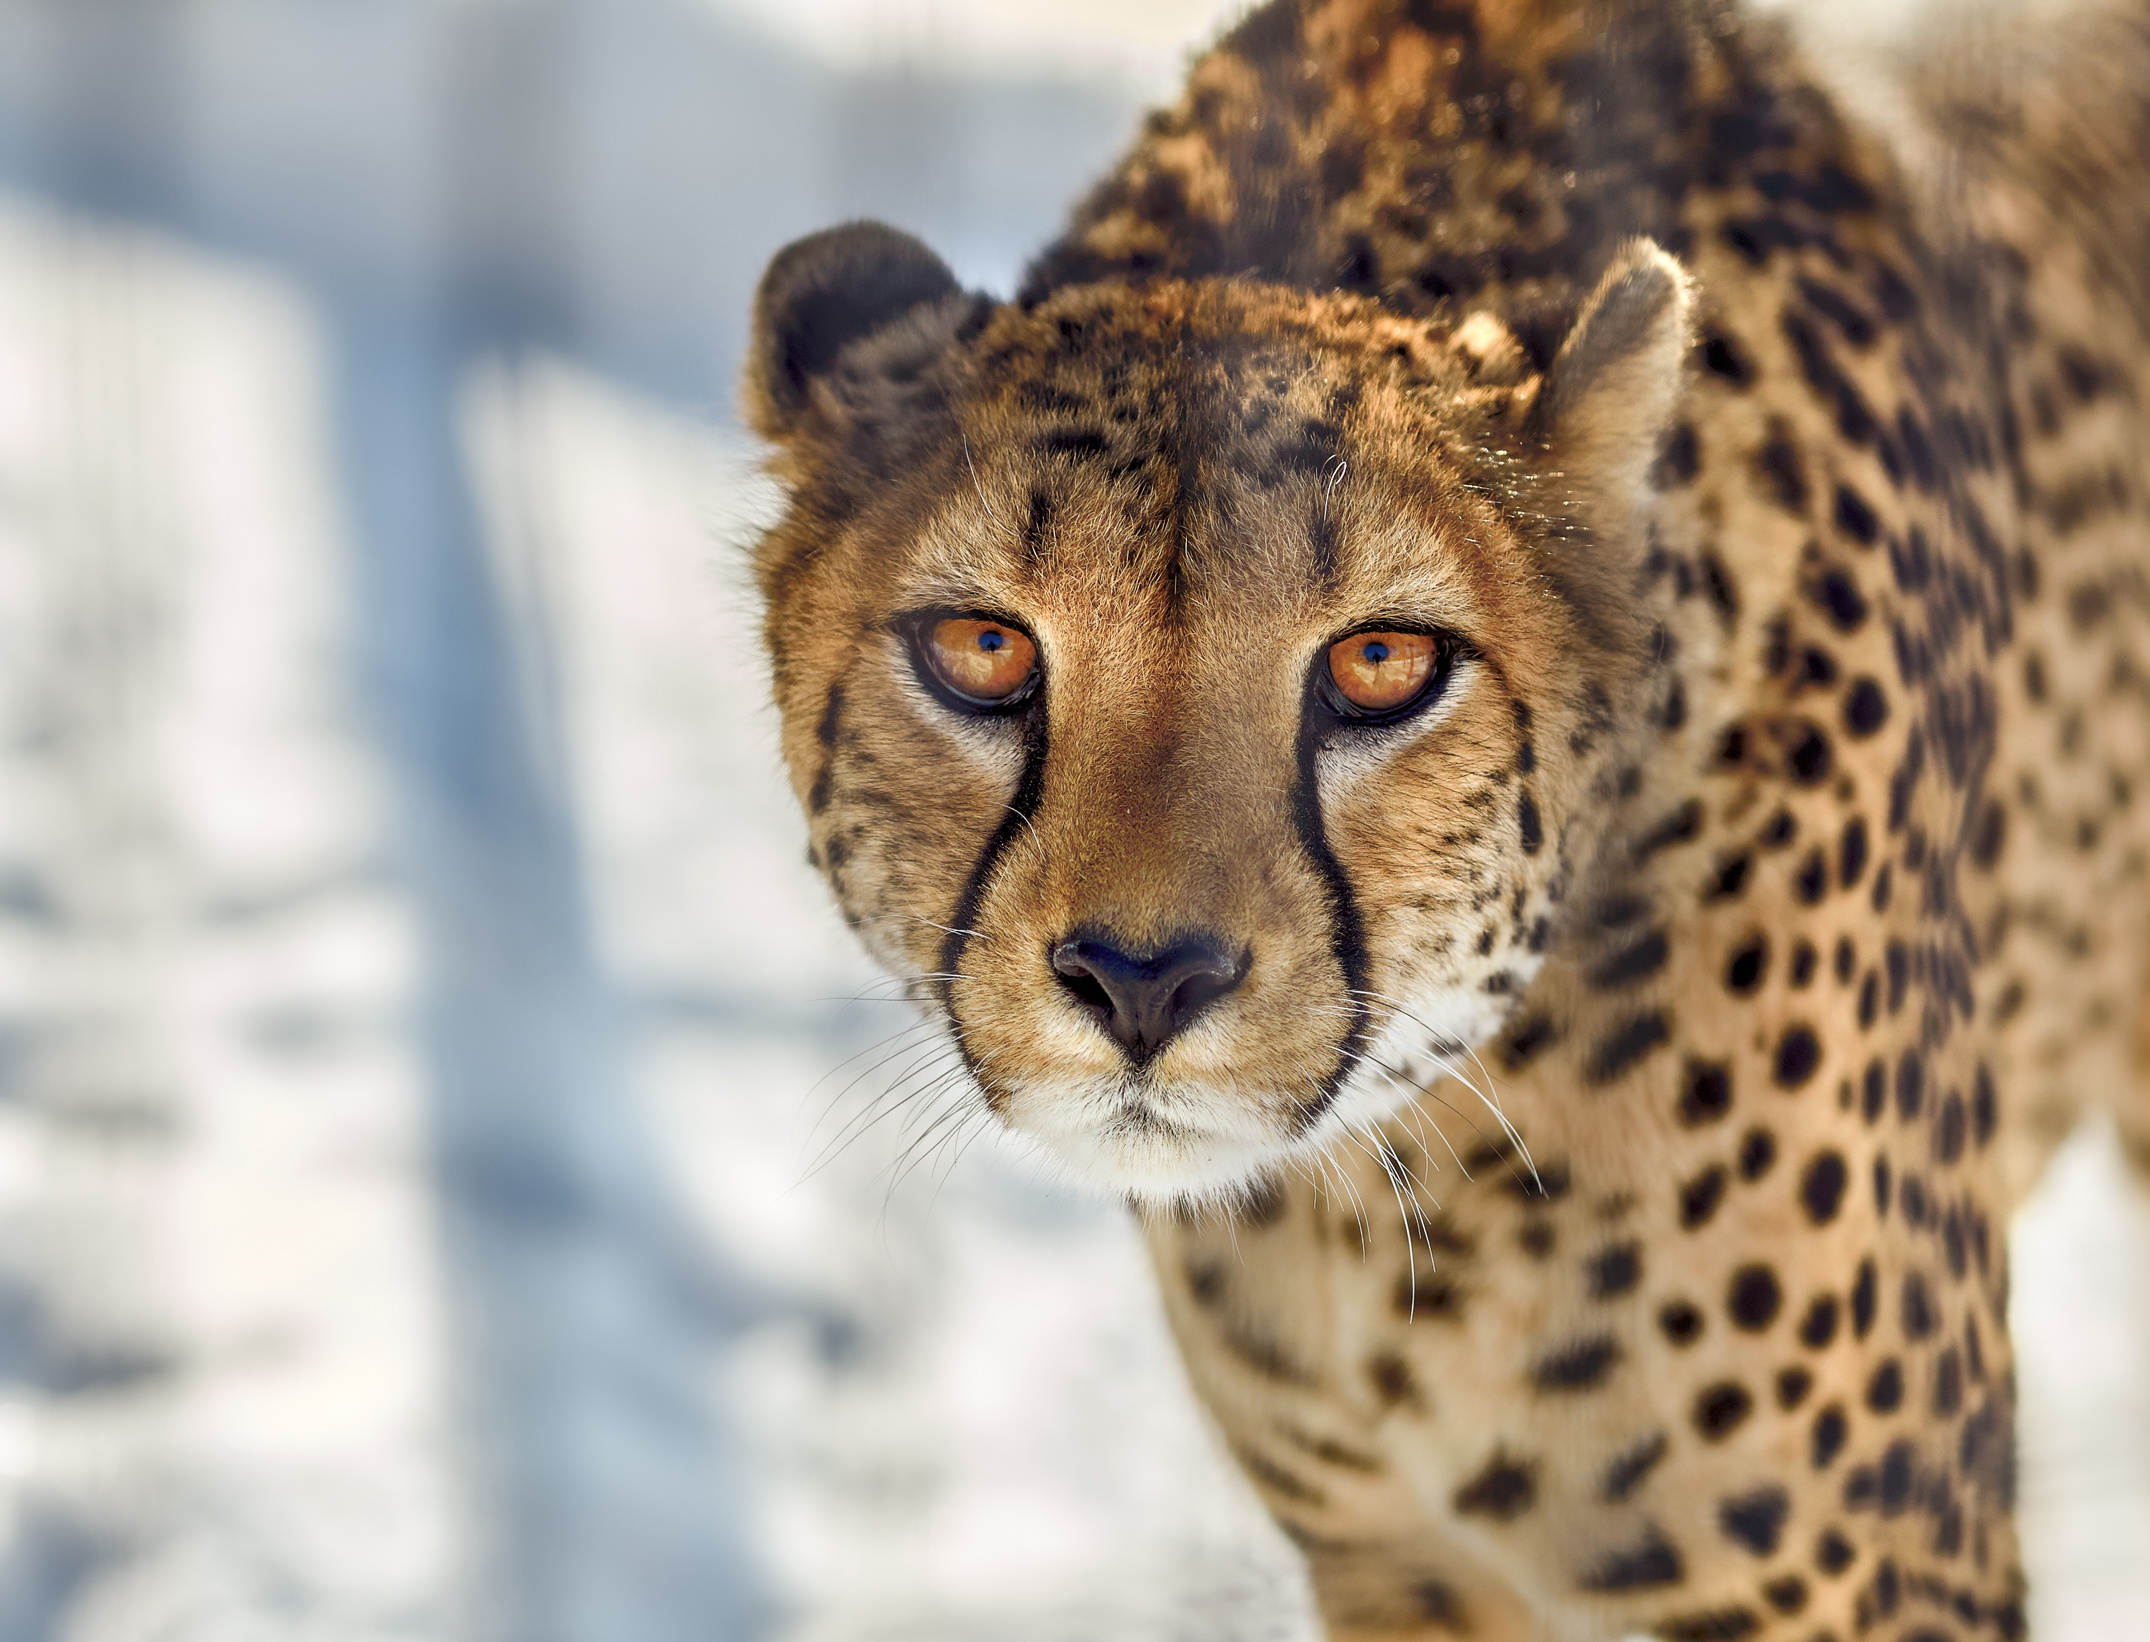 cheetah close up, hd animals, 4k wallpapers, images, backgrounds